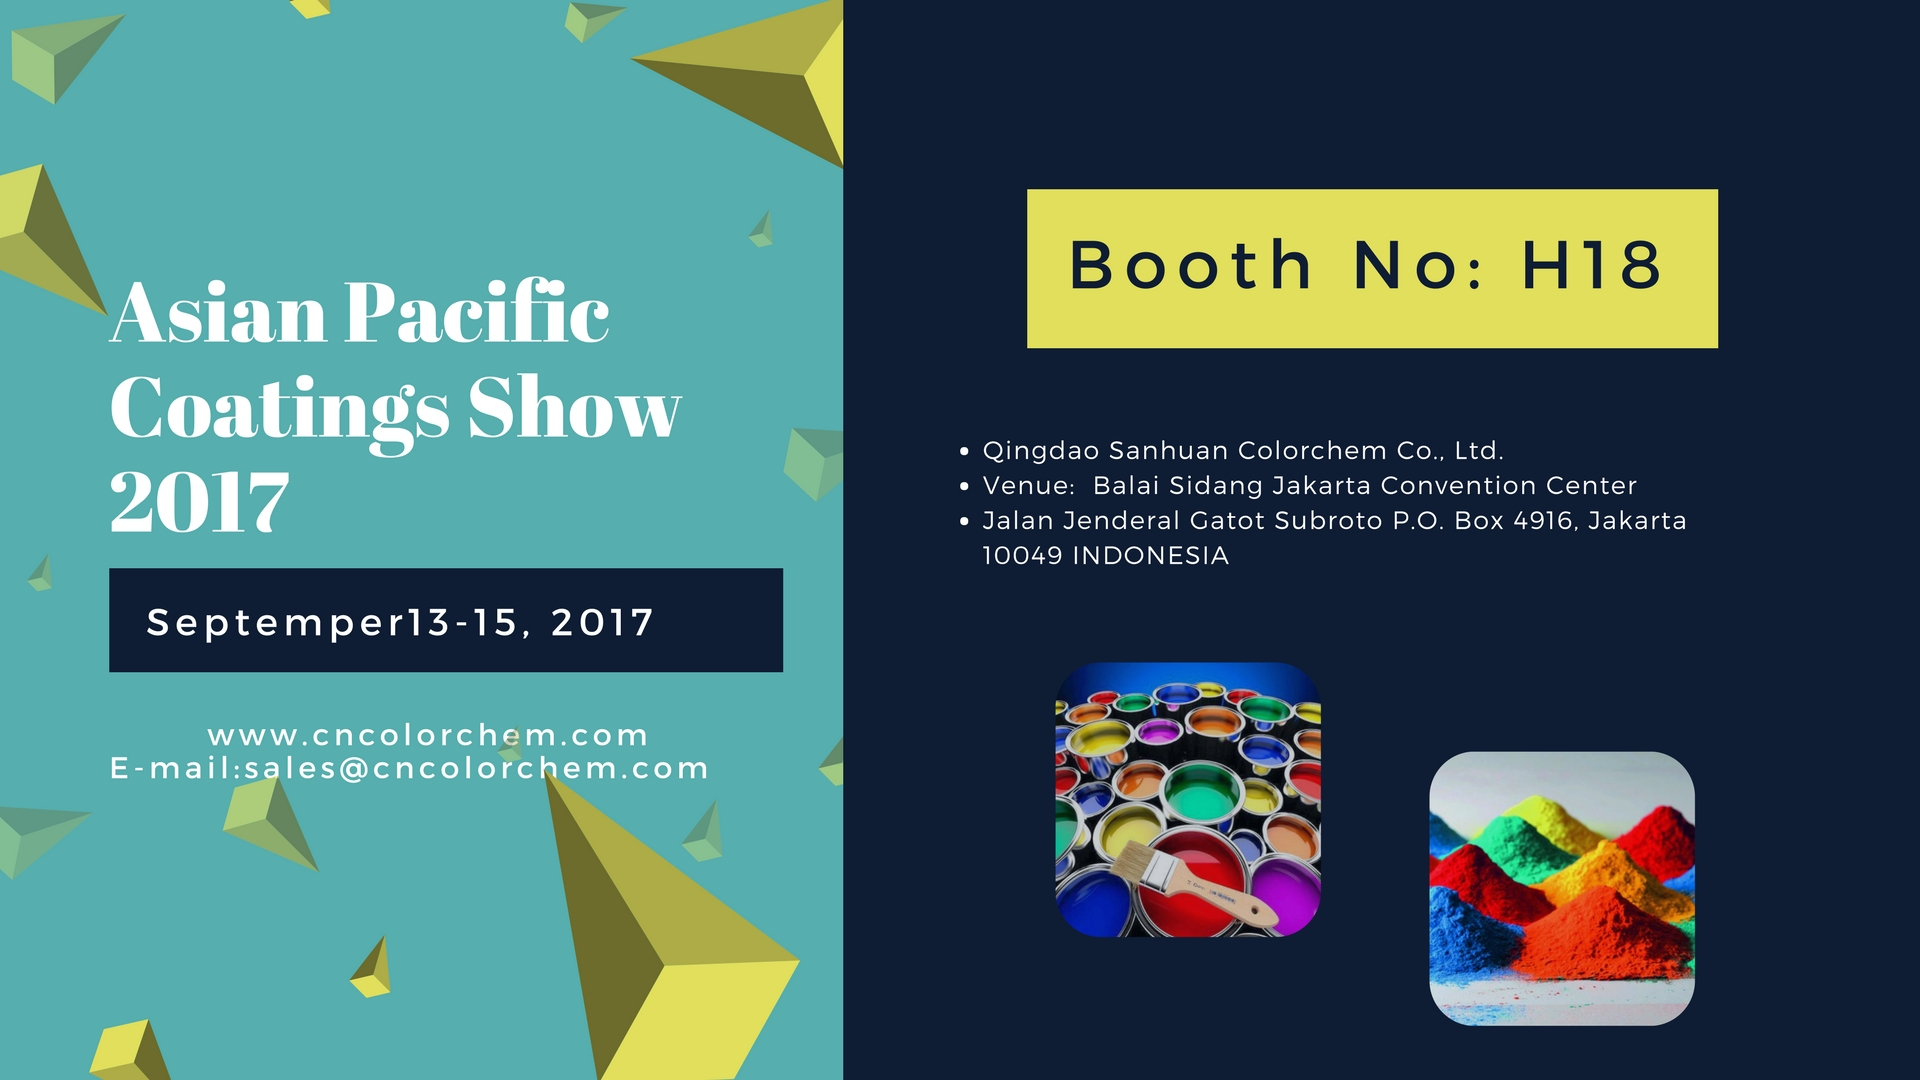 The Asia Pacific Coatings Show 2017